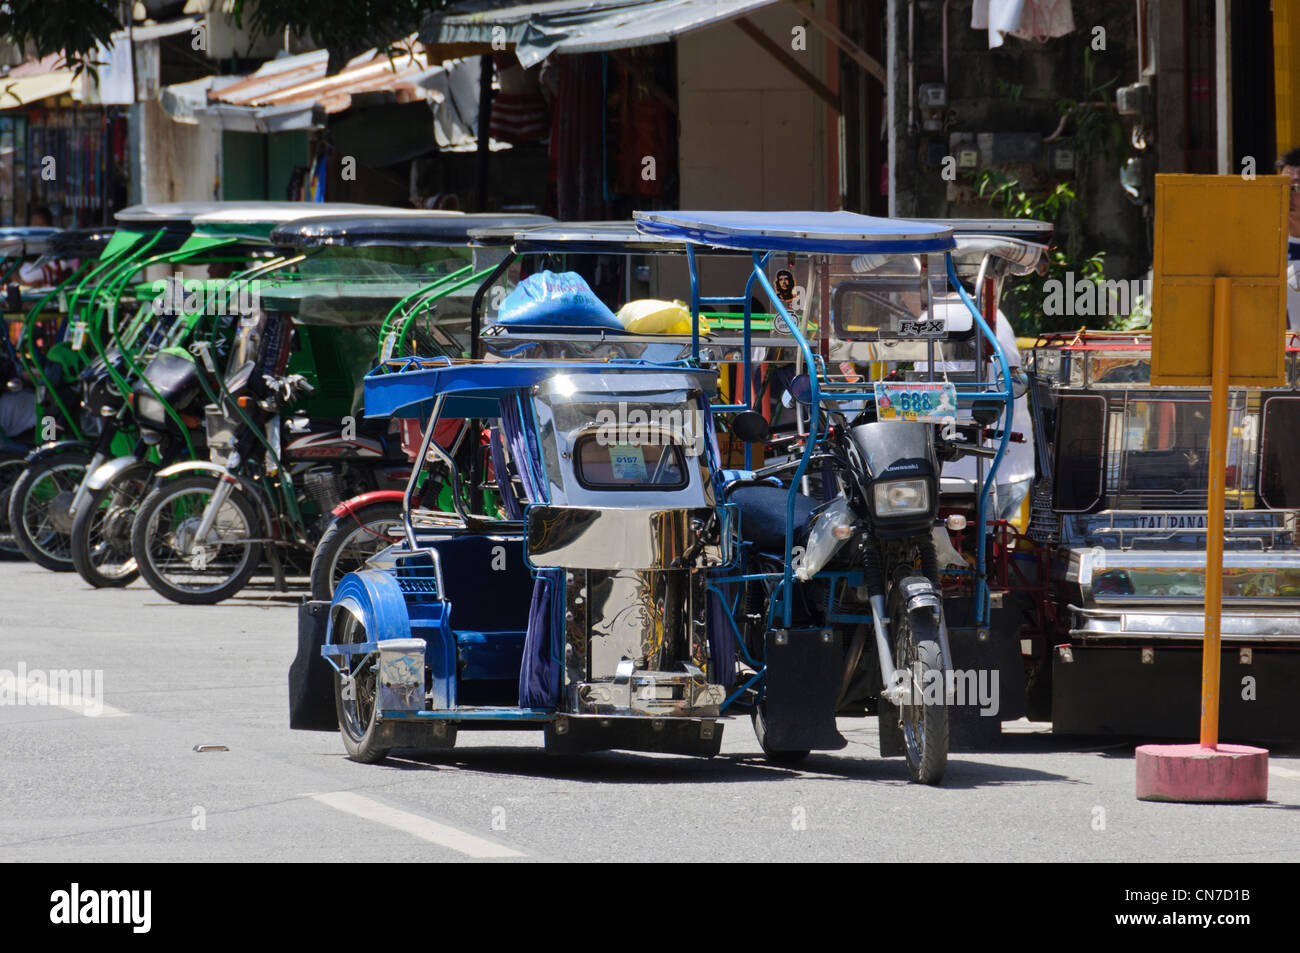 Touristic Motorcycle With Sidecar Stock Photos & Touristic